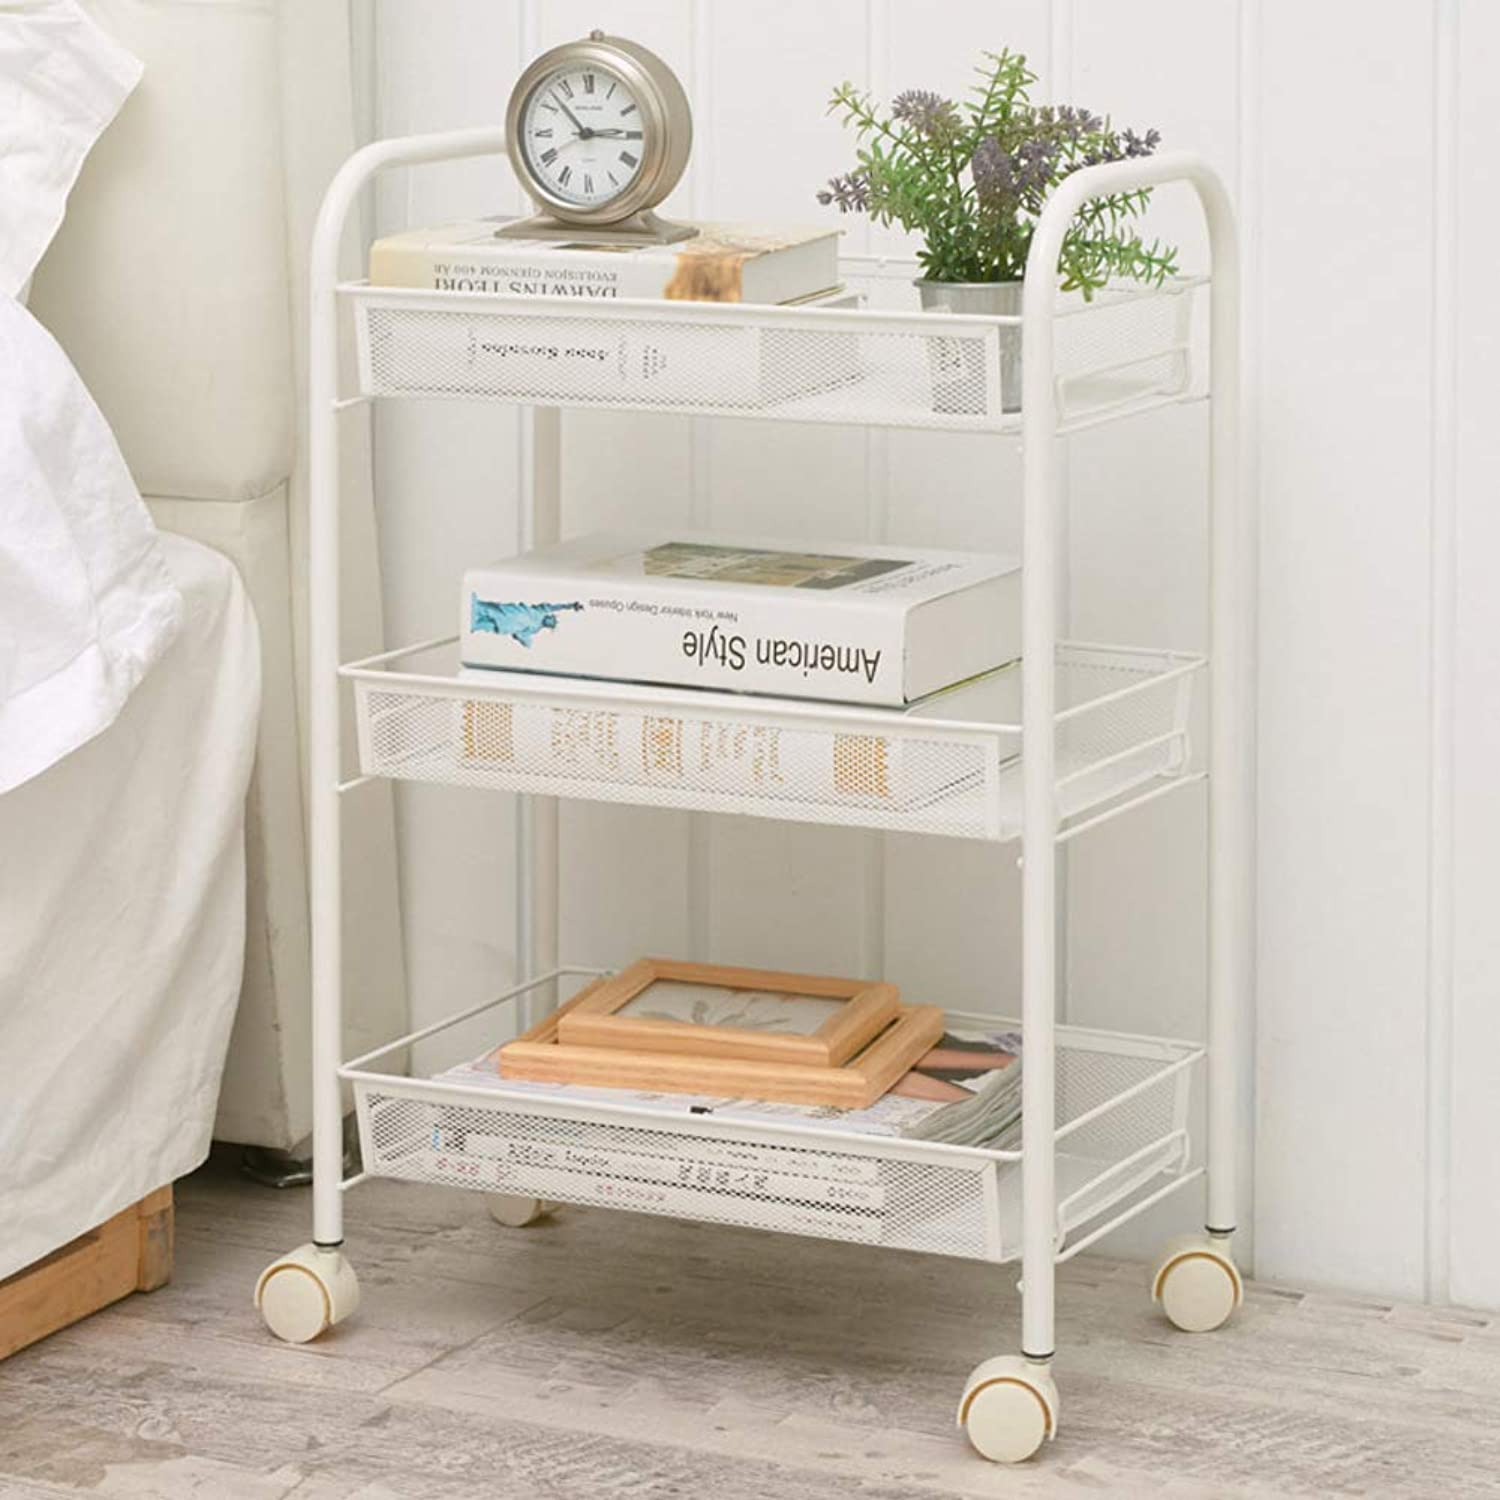 Bar cart,3 Storage Shelves Rolling Wood Kitchen Trolley cart,Small Household Kitchen Racks Nordic ktv Serving cart-White 45x27x63cm(18x11x25inch)